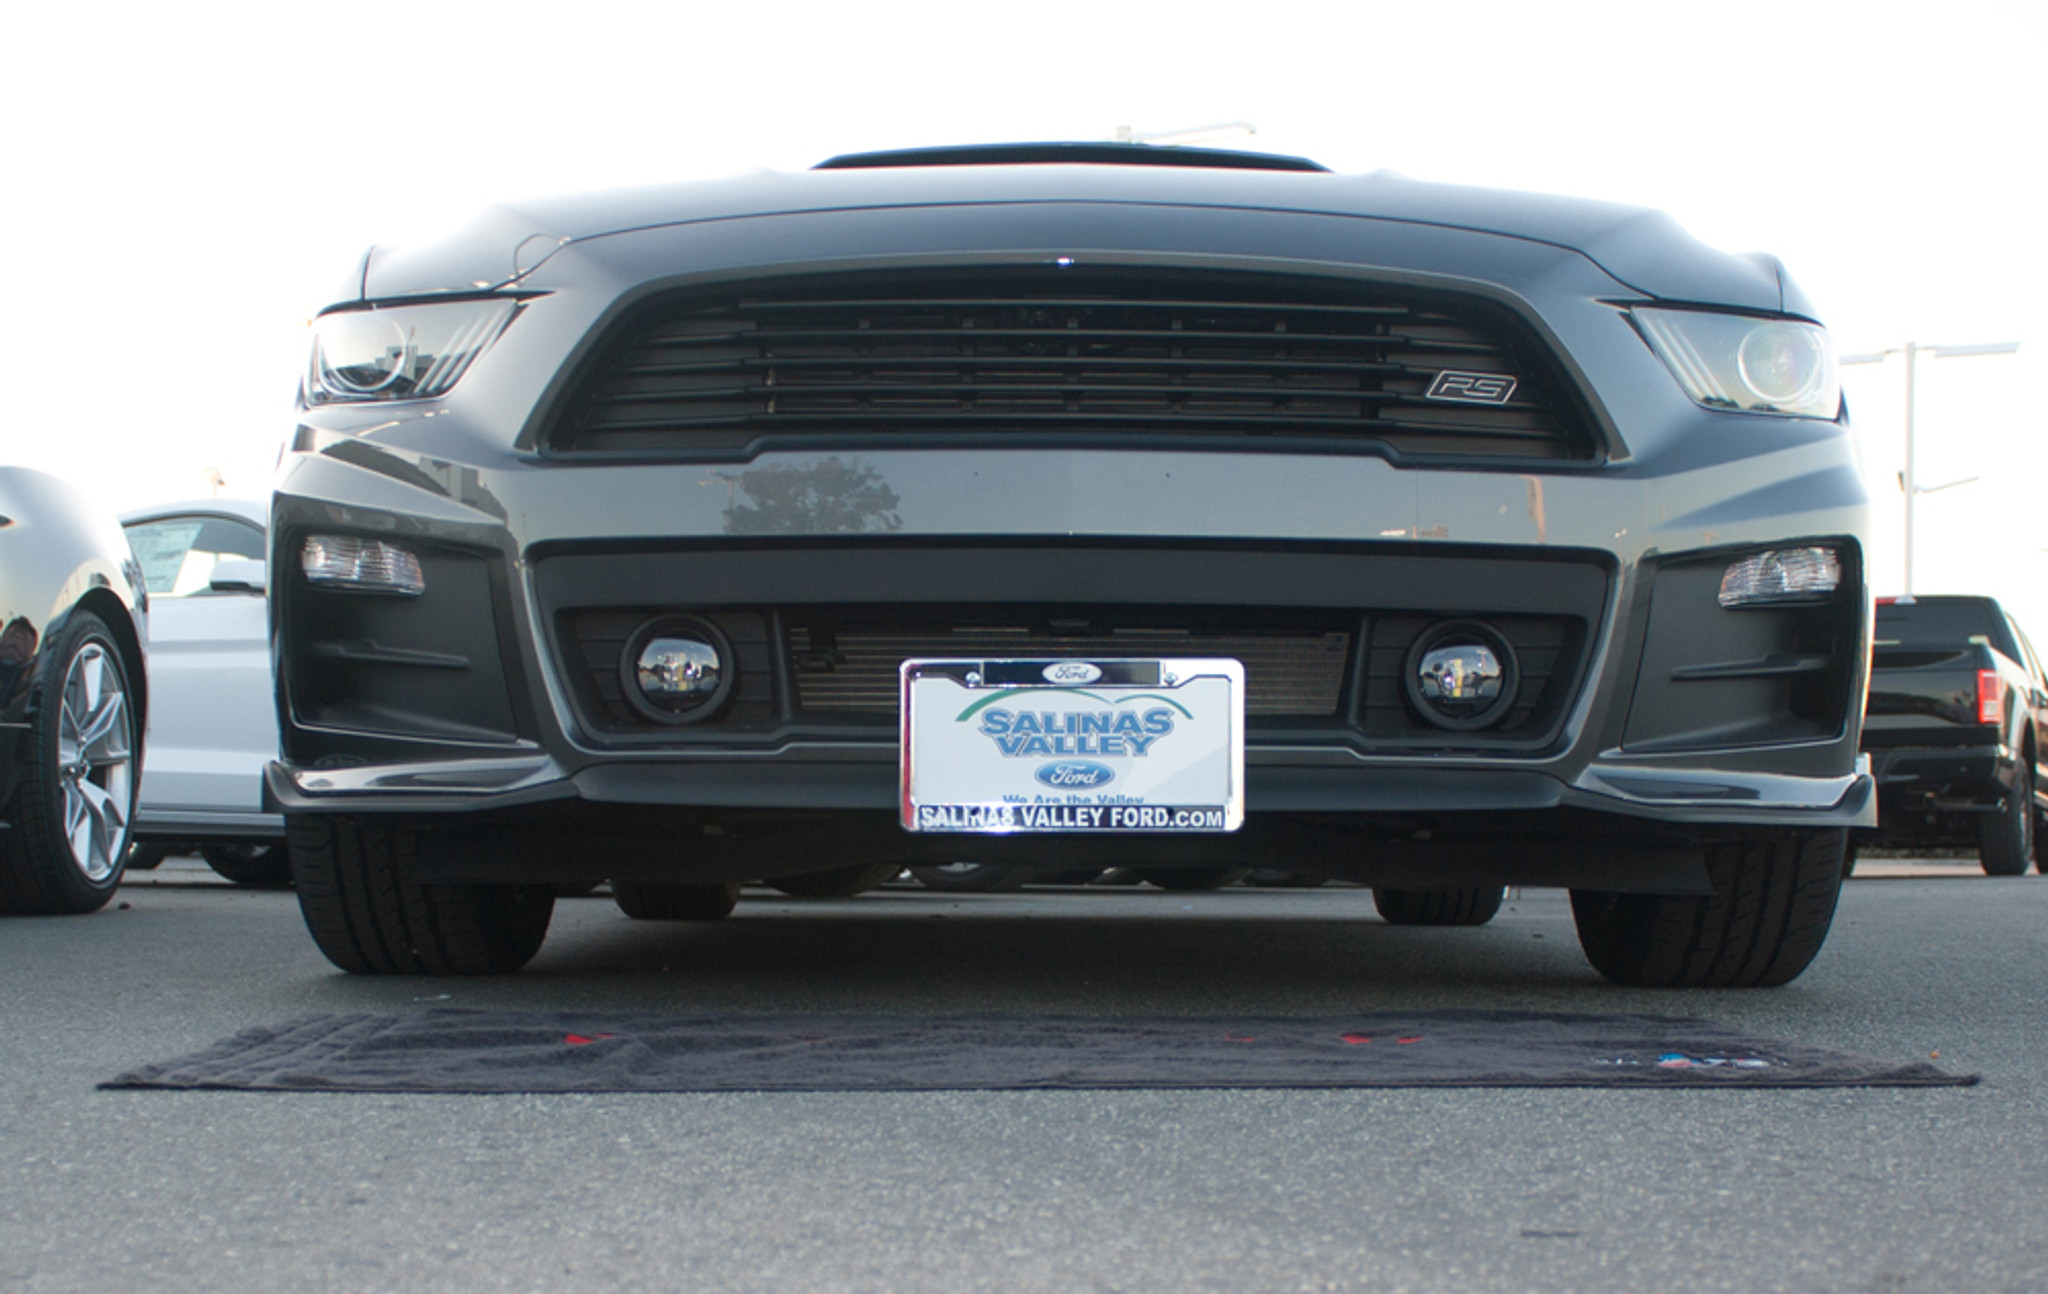 Quick Release Front License Plate Bracket For Ford Mustang Roush 2005-2009 NEW